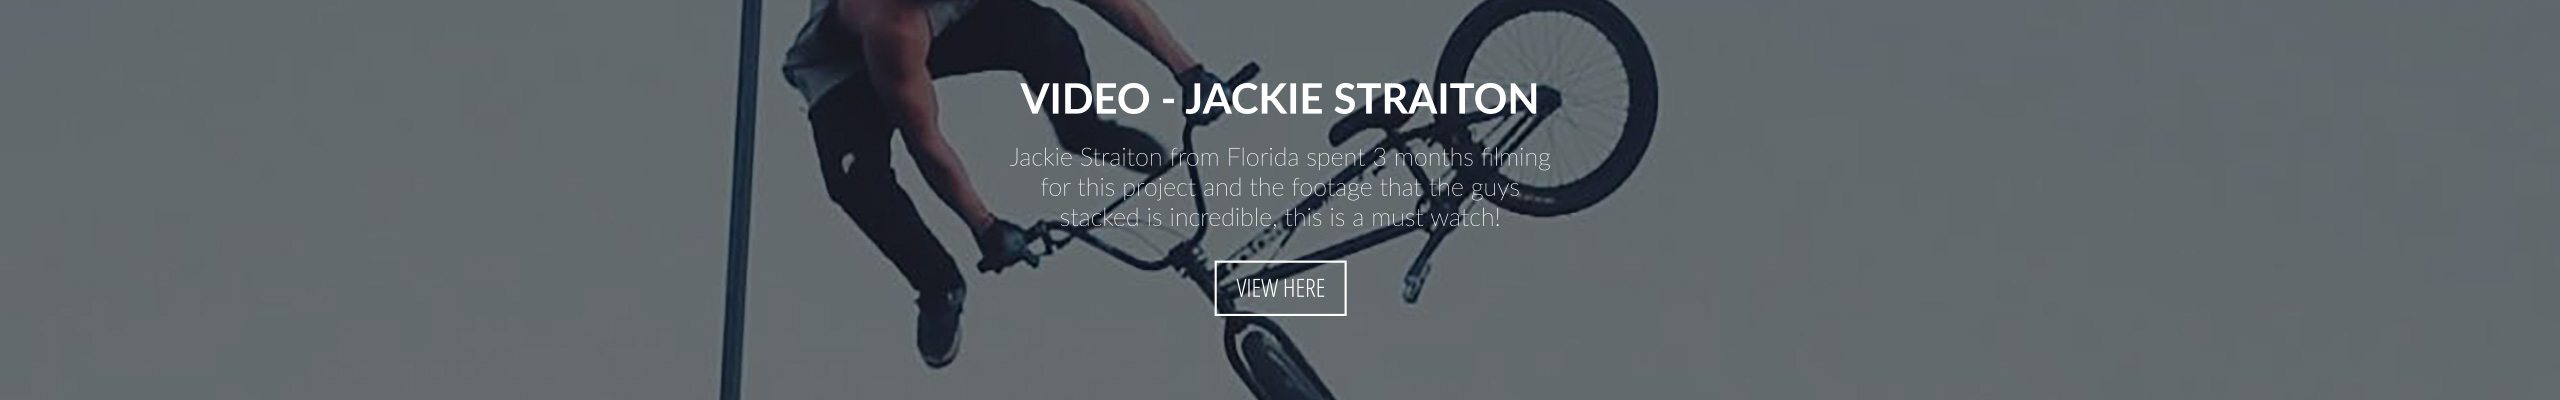 Jackie Straiton video